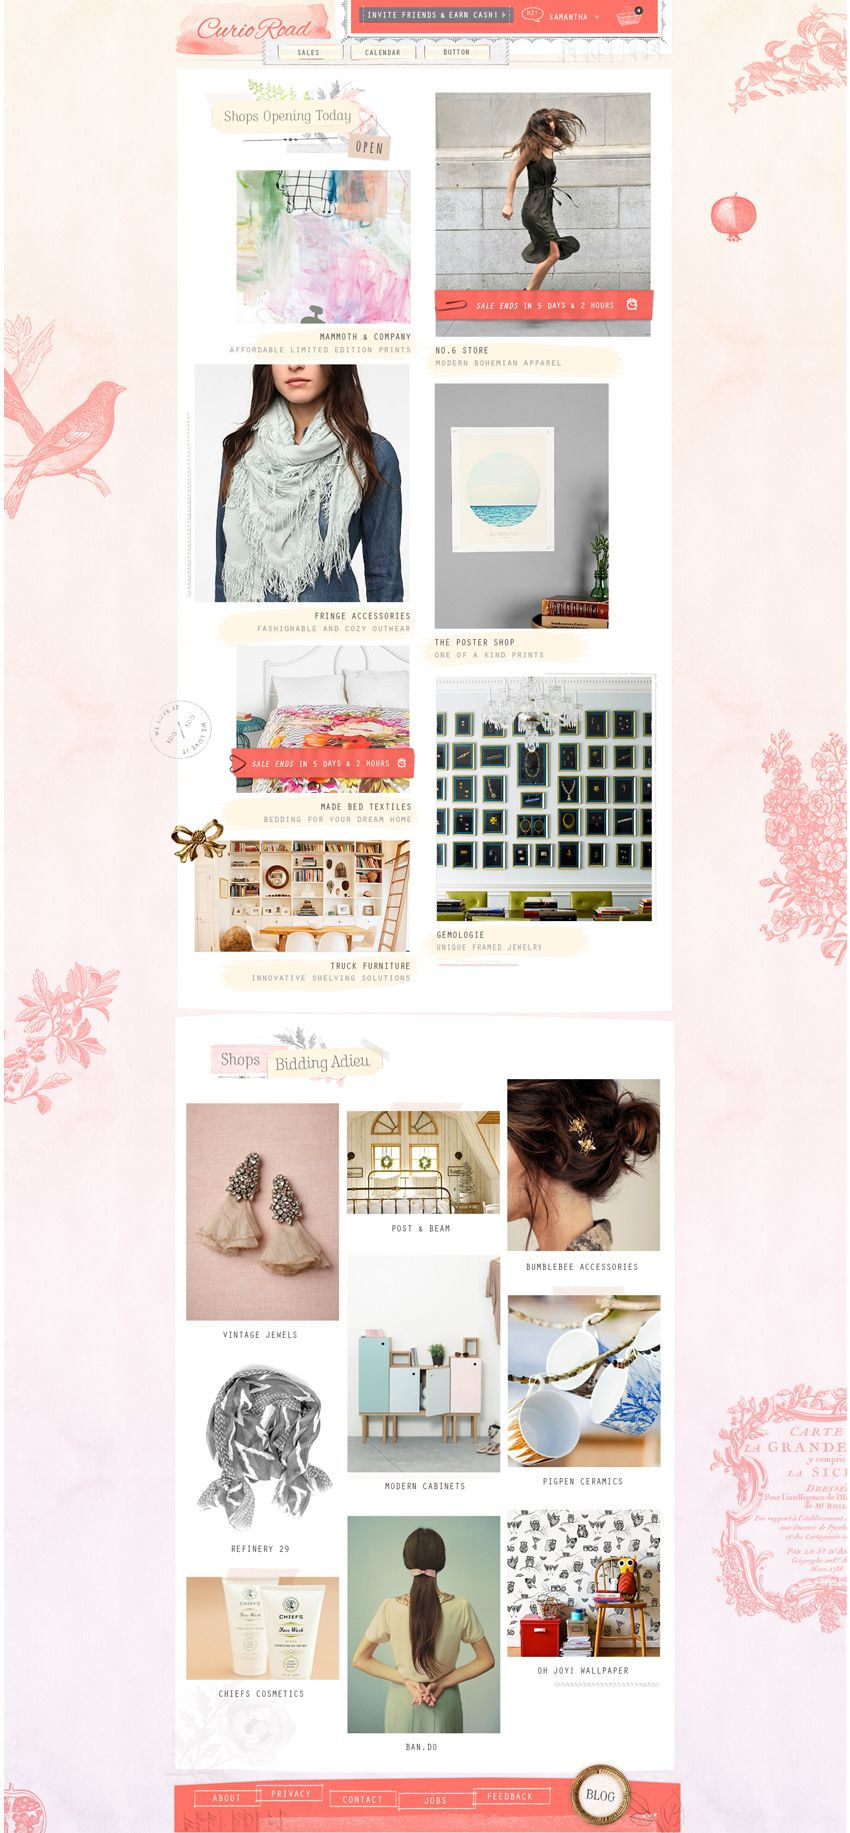 BLOG AND SHOP DESIGNS ARE AMAZING!